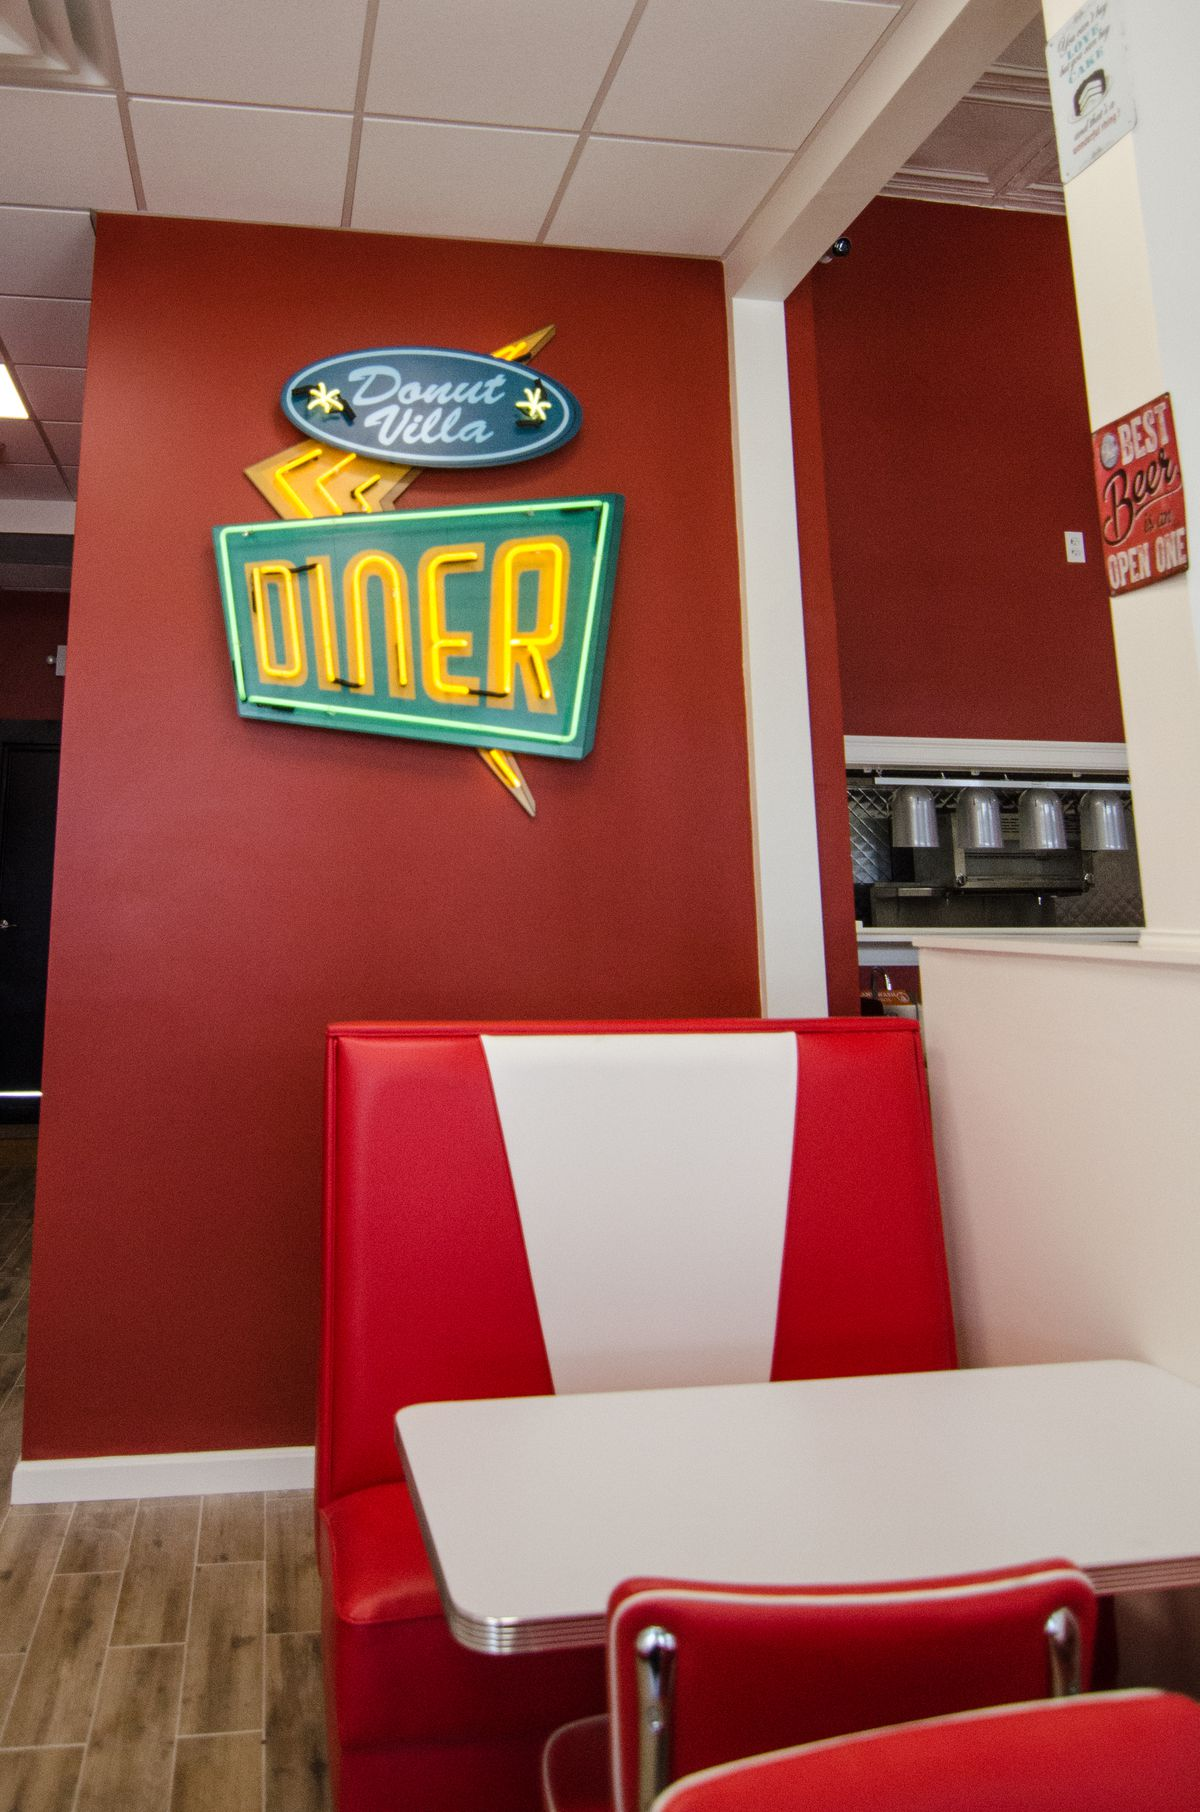 Red and white booths in a diner, with a neon diner sign on the red wall behind